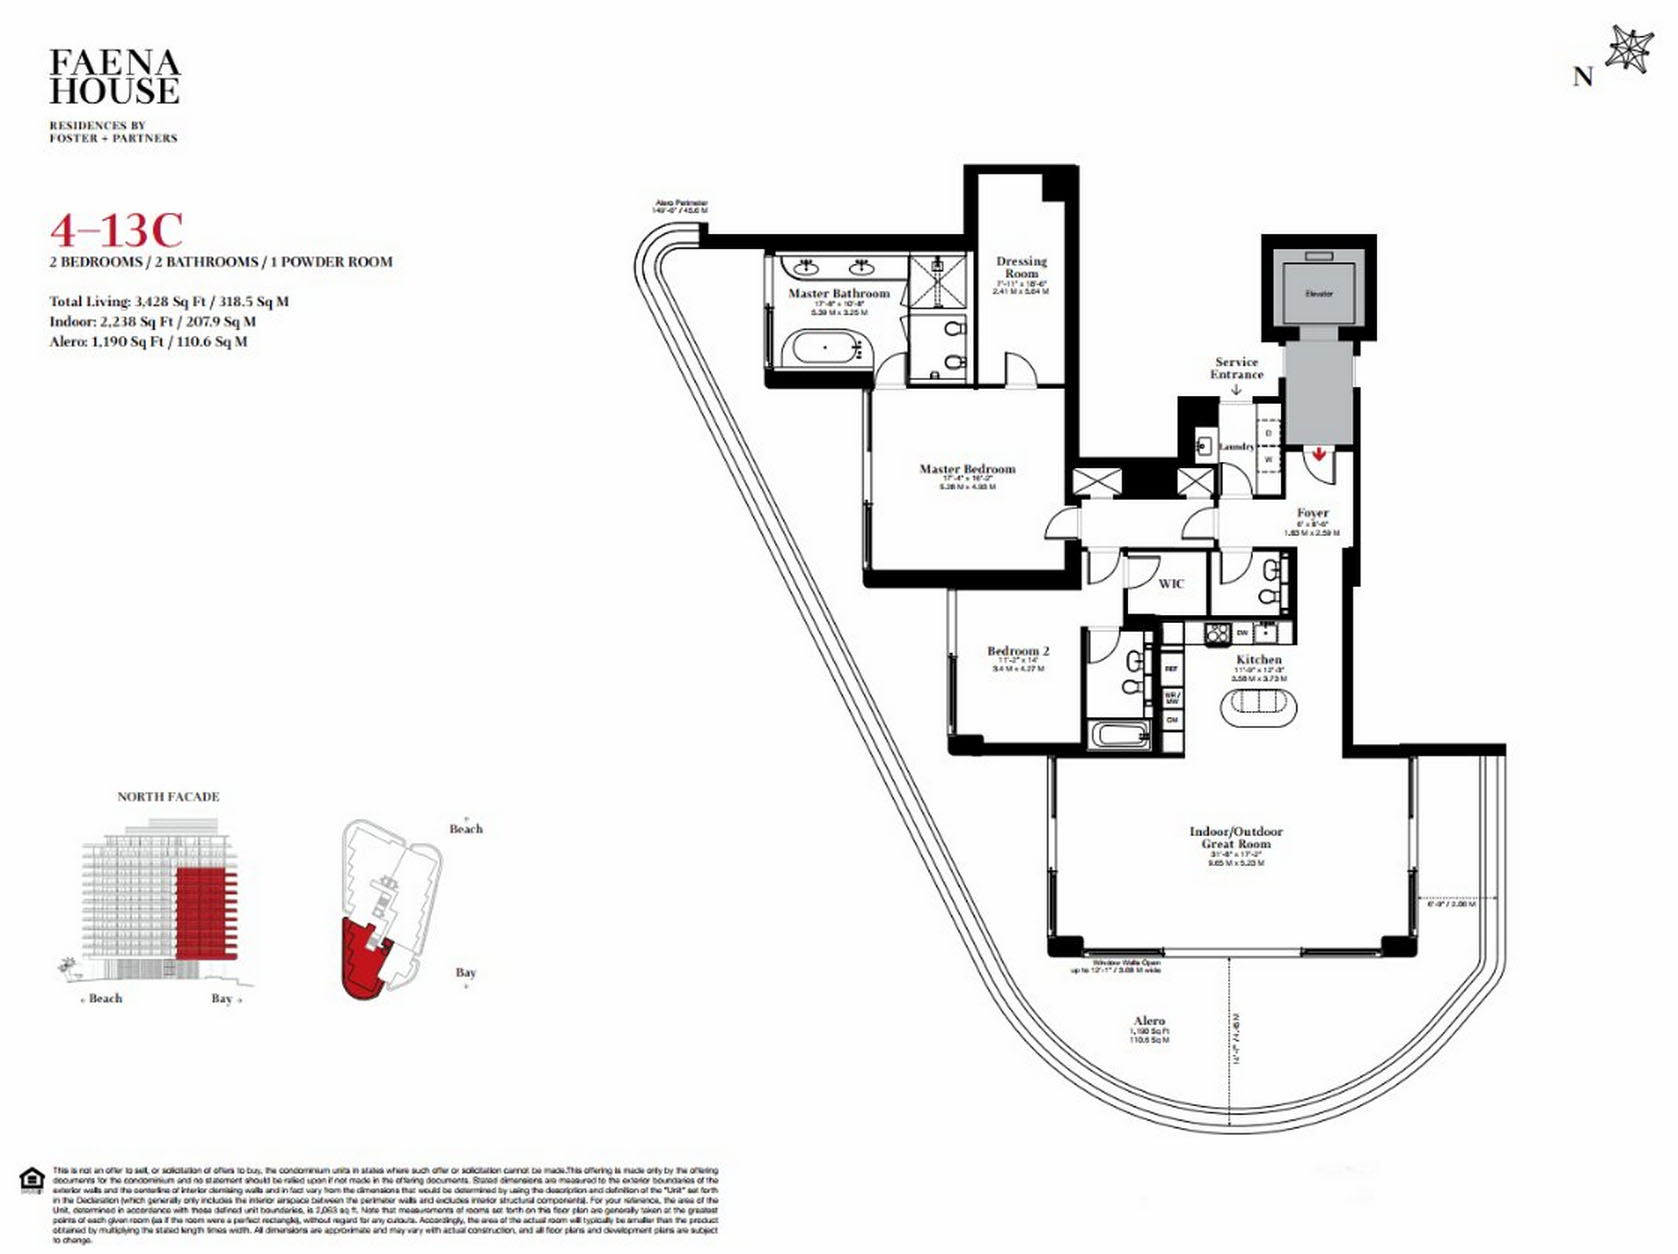 Faena House - Floorplan 3